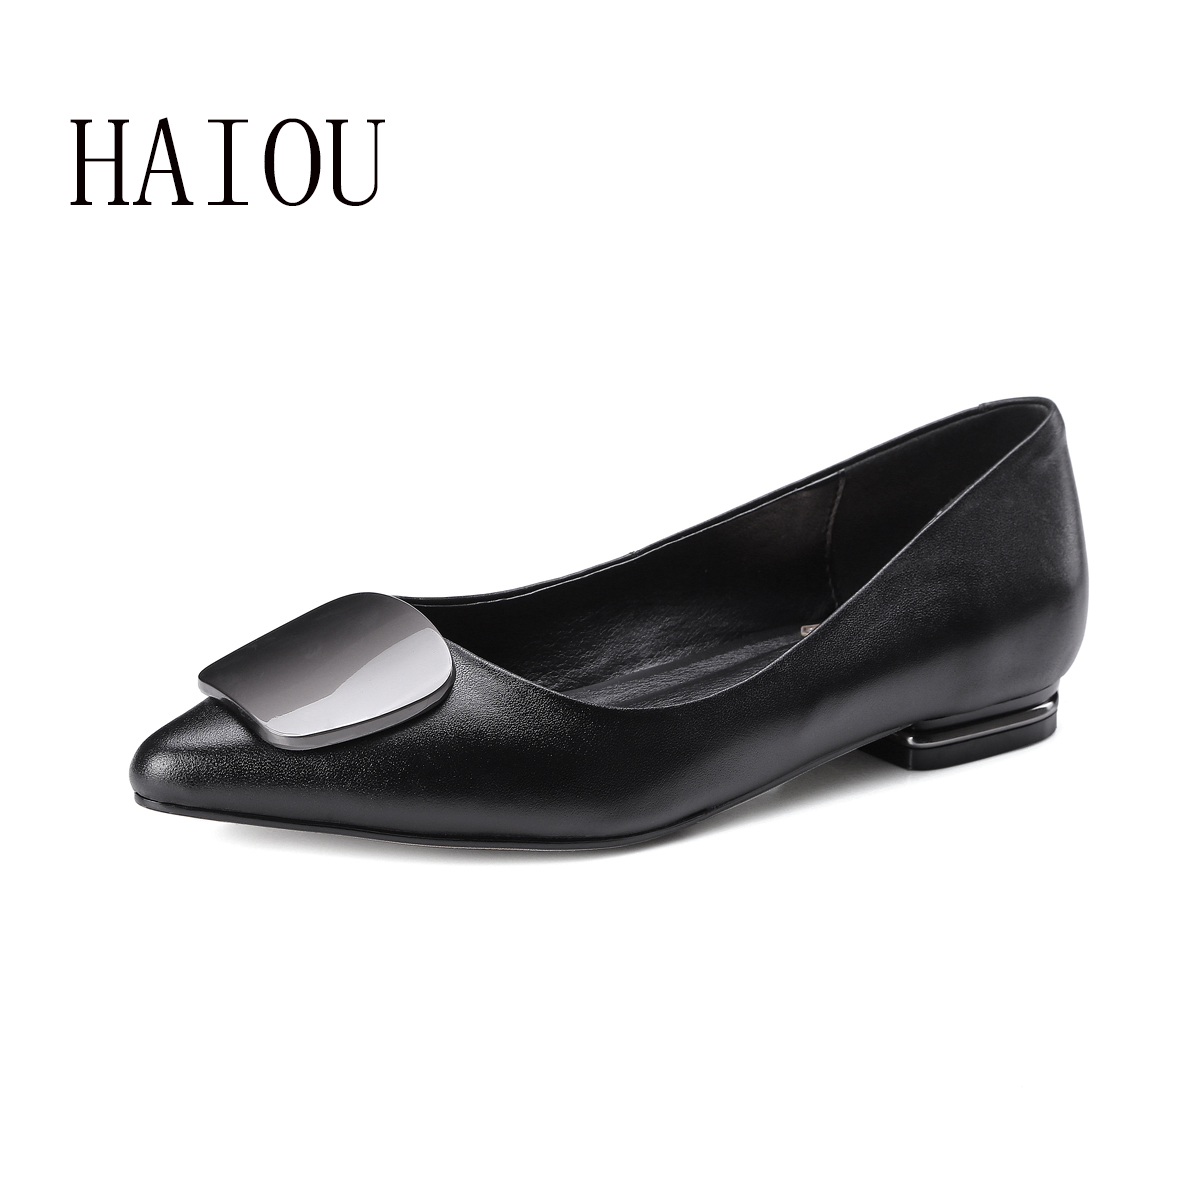 New Spring Genuien Leather Flats Shoes for Woman Fashion Style Pointed Toe Shoes Black Casual Women's Flat Shoe Shallow Big Size 2017 new fashion spring ladies pointed toe shoes woman flats crystal diamond silver wedding shoes for bridal plus size hot sale